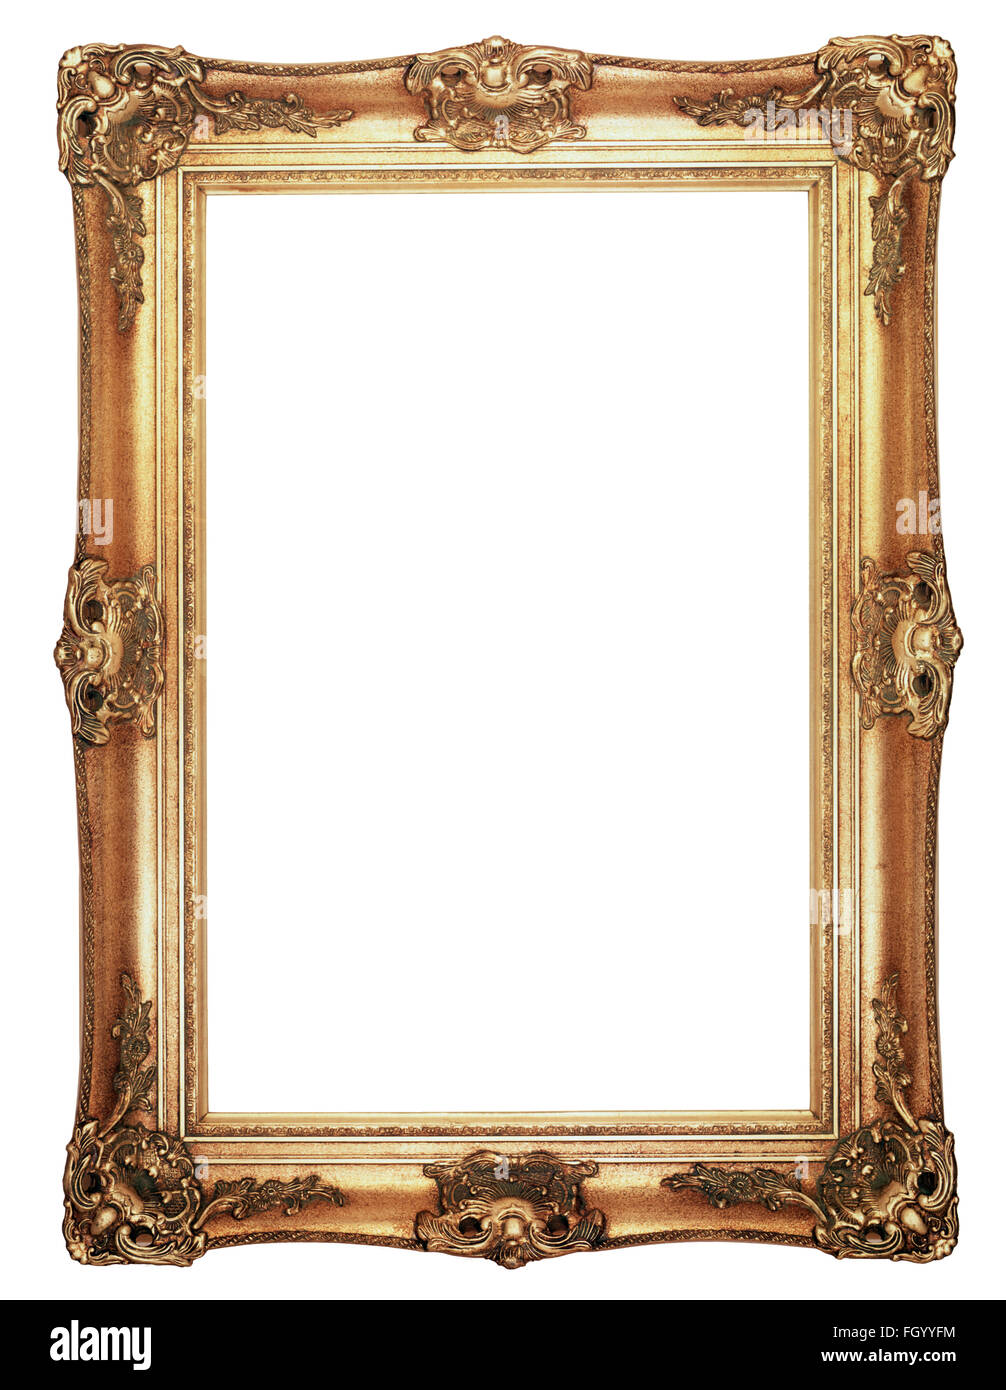 Gold Picture Frame High Resolution Stock Photography And Images Alamy